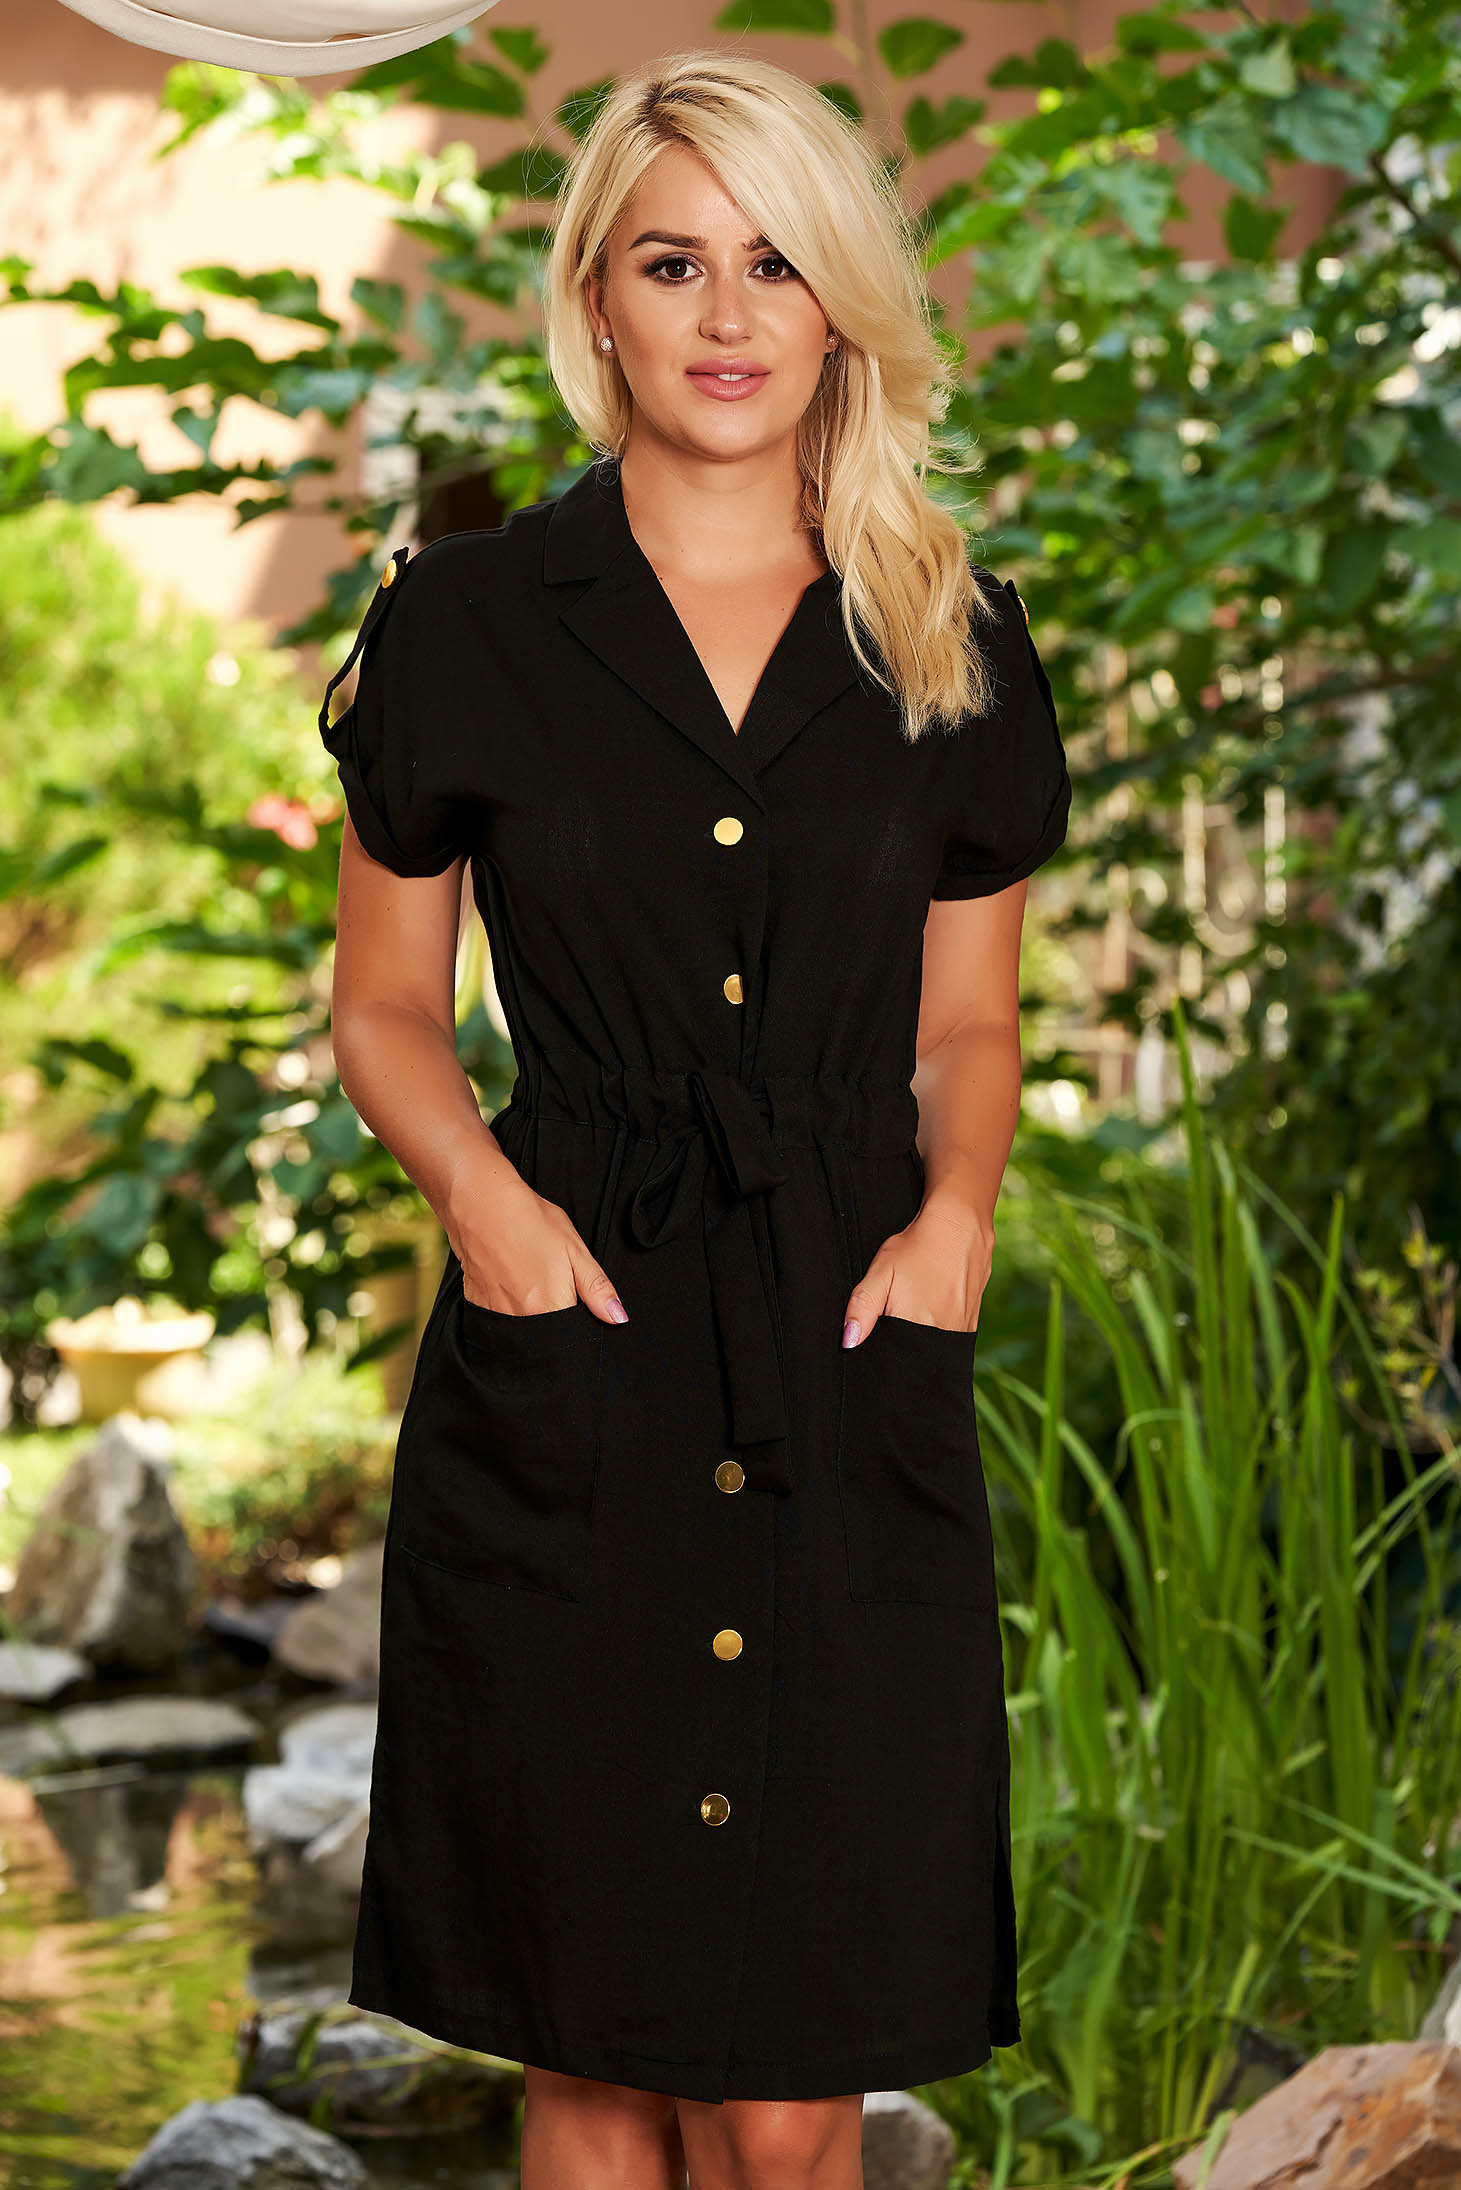 Black dress casual short sleeves accessorized with tied waistband straight